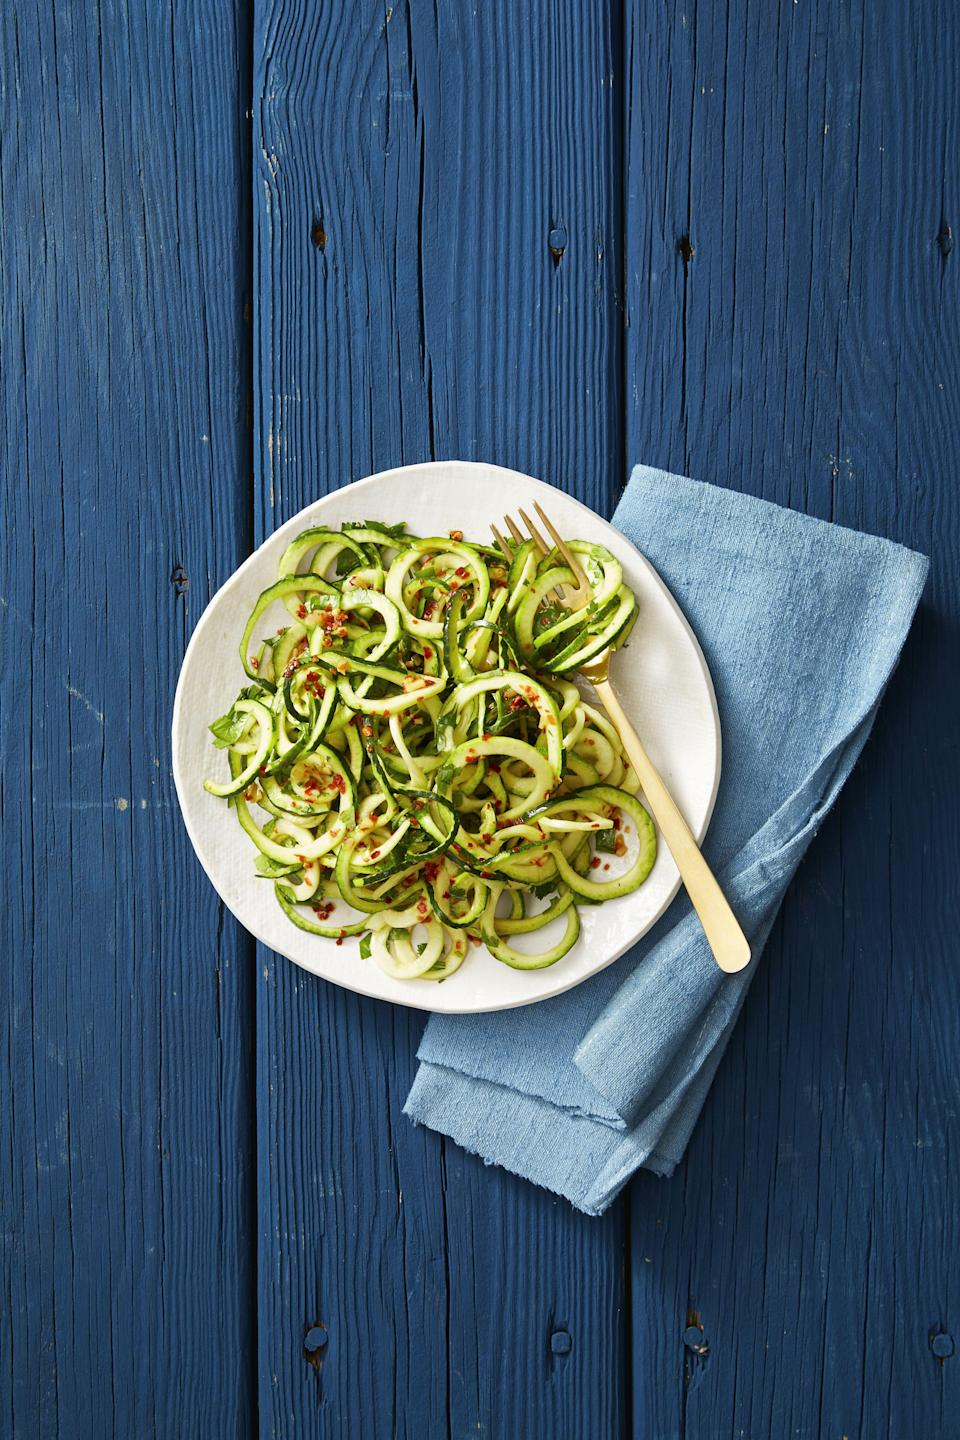 """<p>Zucchini might just be <a href=""""https://www.goodhousekeeping.com/health/diet-nutrition/a28859191/butternut-squash-nutrition/"""" rel=""""nofollow noopener"""" target=""""_blank"""" data-ylk=""""slk:the most versatile squash"""" class=""""link rapid-noclick-resp"""">the most versatile squash</a> in the produce aisle, capturing the hearts of veggie lovers everywhere for its ability to step in for many other ingredients in favorite recipes. Fresh zucchini can be used as a <a href=""""https://www.goodhousekeeping.com/food-recipes/cooking/a32714182/how-to-make-pizza-at-home-recipe/"""" rel=""""nofollow noopener"""" target=""""_blank"""" data-ylk=""""slk:homemade pizza base"""" class=""""link rapid-noclick-resp"""">homemade pizza base</a>, a <a href=""""https://www.goodhousekeeping.com/food-recipes/healthy/g4081/healthy-sandwiches/"""" rel=""""nofollow noopener"""" target=""""_blank"""" data-ylk=""""slk:sandwich bun"""" class=""""link rapid-noclick-resp"""">sandwich bun</a>, or, as<strong> zucchini noodles, </strong>a.k.a. zoodles. Like traditional pasta, these easy-to-cook strands of deliciousness can stand up to rich sauces, bakes, and toppings galore. But unlike pasta, they pack in a hearty serving of nutrients rather than a bunch of carbohydrates, sugar and refined additives. </p><p>These naturally gluten-free noodles clock in at just <strong>about 20 calories per cup</strong>, making them a great choice for pasta lovers who are looking to cut calories. Each cup also packs in dietary fiber, as well as potassium and vitamin C, helping a plate of these noodles feel so satisfying. And since they're water-packed, zoodles can also be a refreshing addition to a <a href=""""https://www.goodhousekeeping.com/food-recipes/healthy/g2128/summer-salads/"""" rel=""""nofollow noopener"""" target=""""_blank"""" data-ylk=""""slk:lunchtime salad"""" class=""""link rapid-noclick-resp"""">lunchtime salad</a>, or even <a href=""""https://www.goodhousekeeping.com/food-recipes/g4416/zucchini-soups/"""" rel=""""nofollow noopener"""" target=""""_blank"""" data-ylk=""""slk:a zucchini-based soup"""" class=""""link rapid-noclick-resp"""